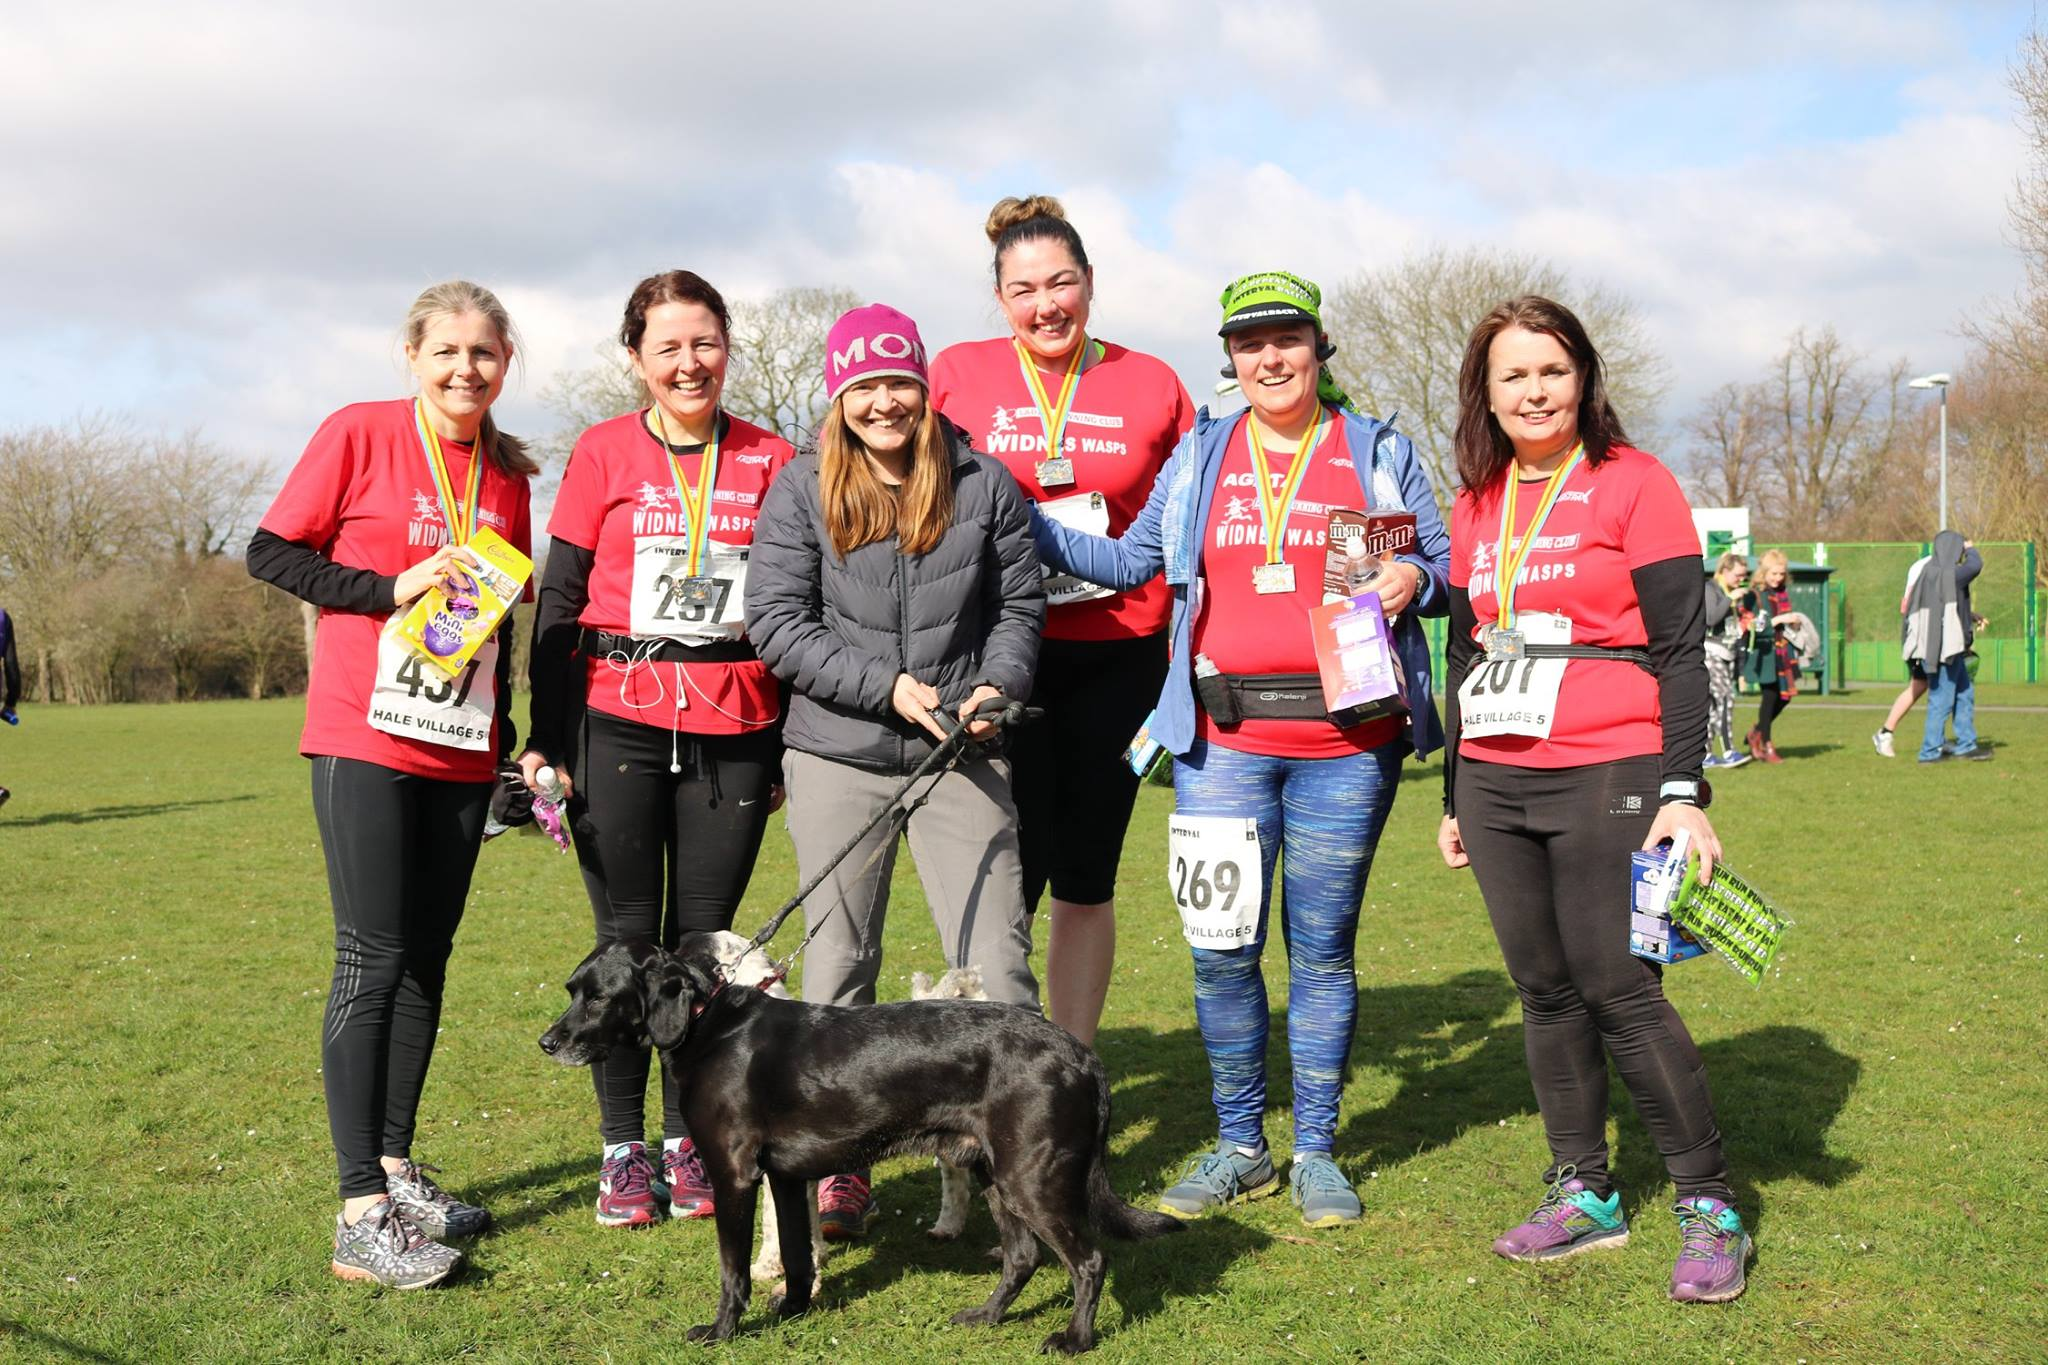 Widnes Wasps Ladies Running Club - Race Standards - Finish Line pic with Medals